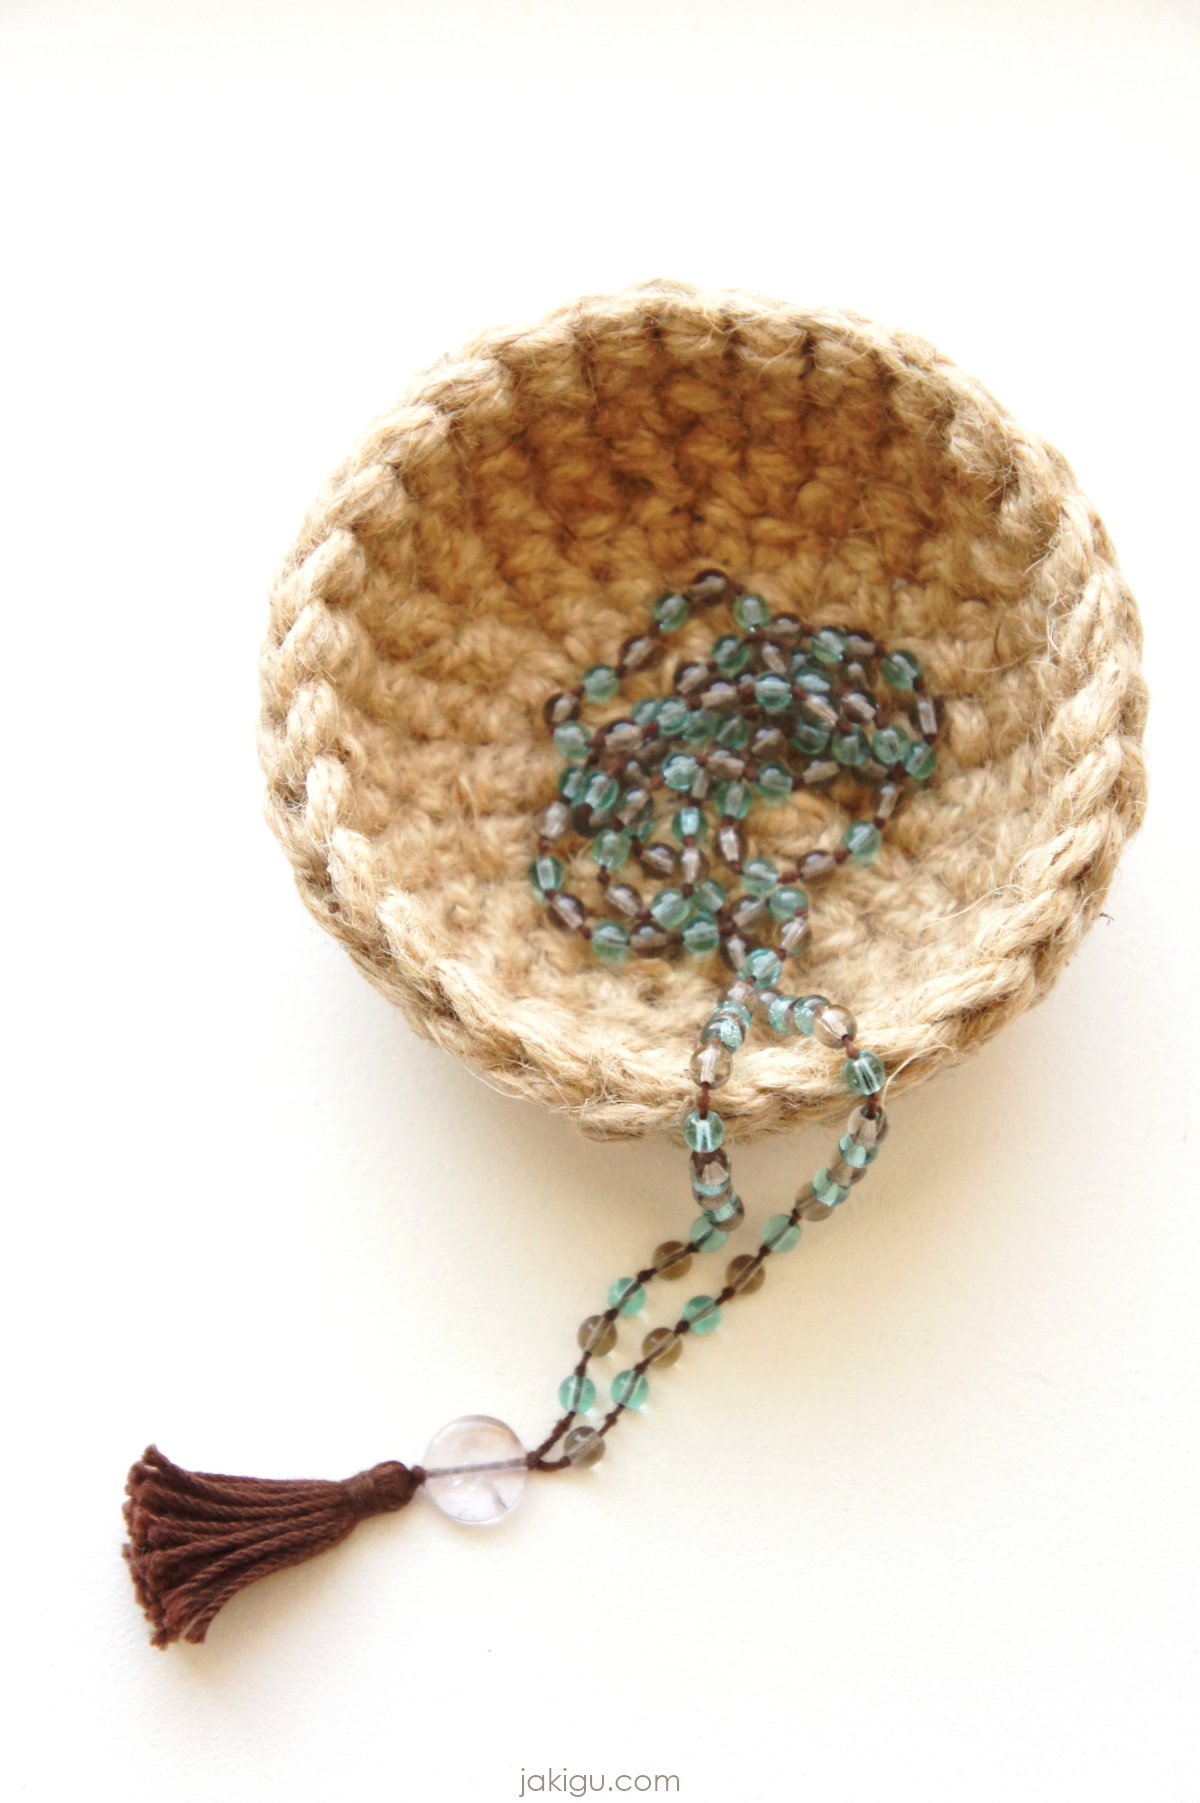 tiny crochet bowl with mala necklace